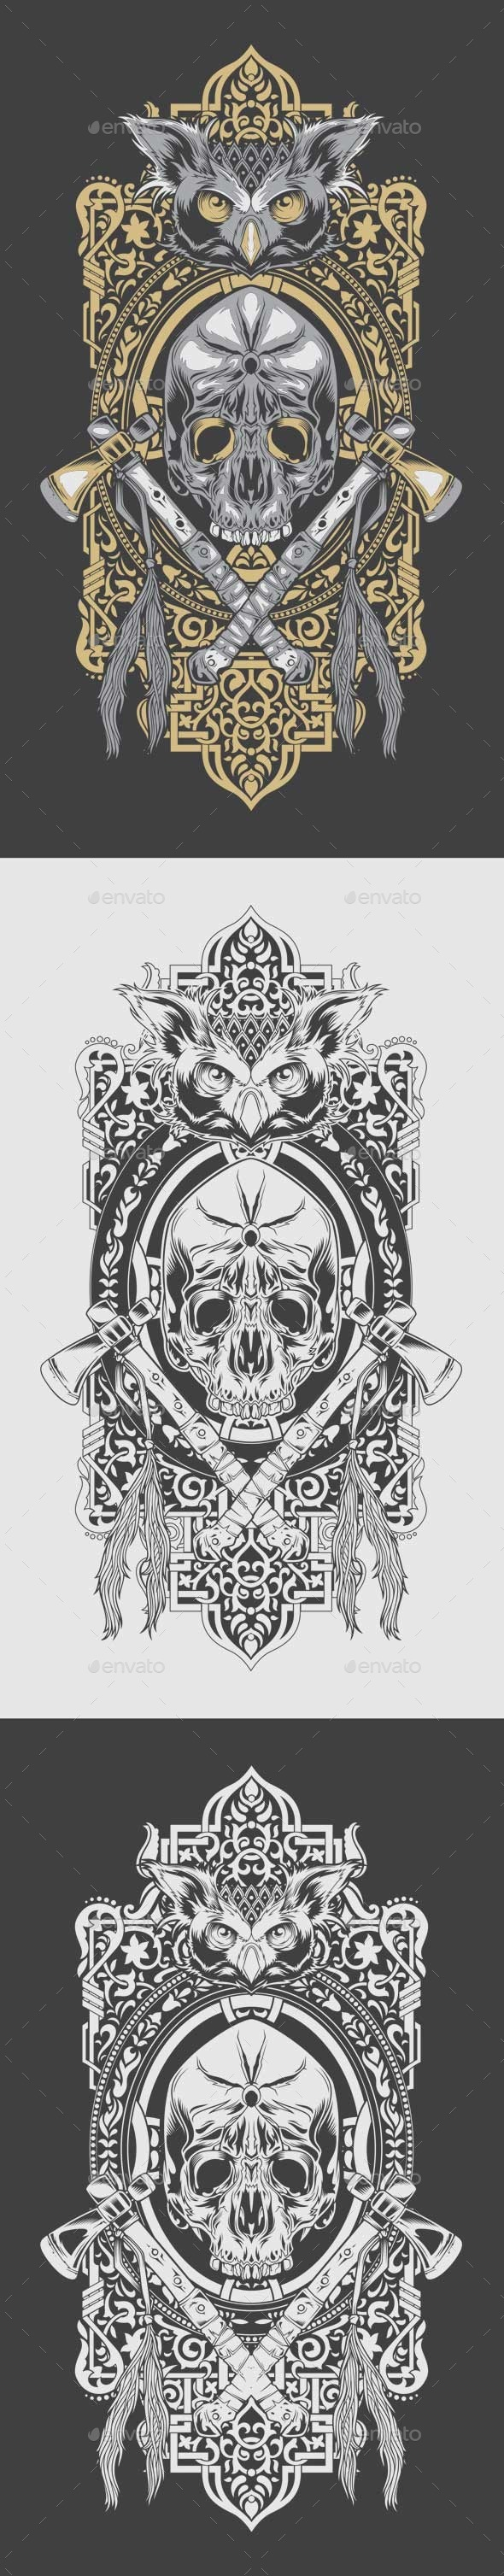 GraphicRiver Decorative Owl and Skull 10600928